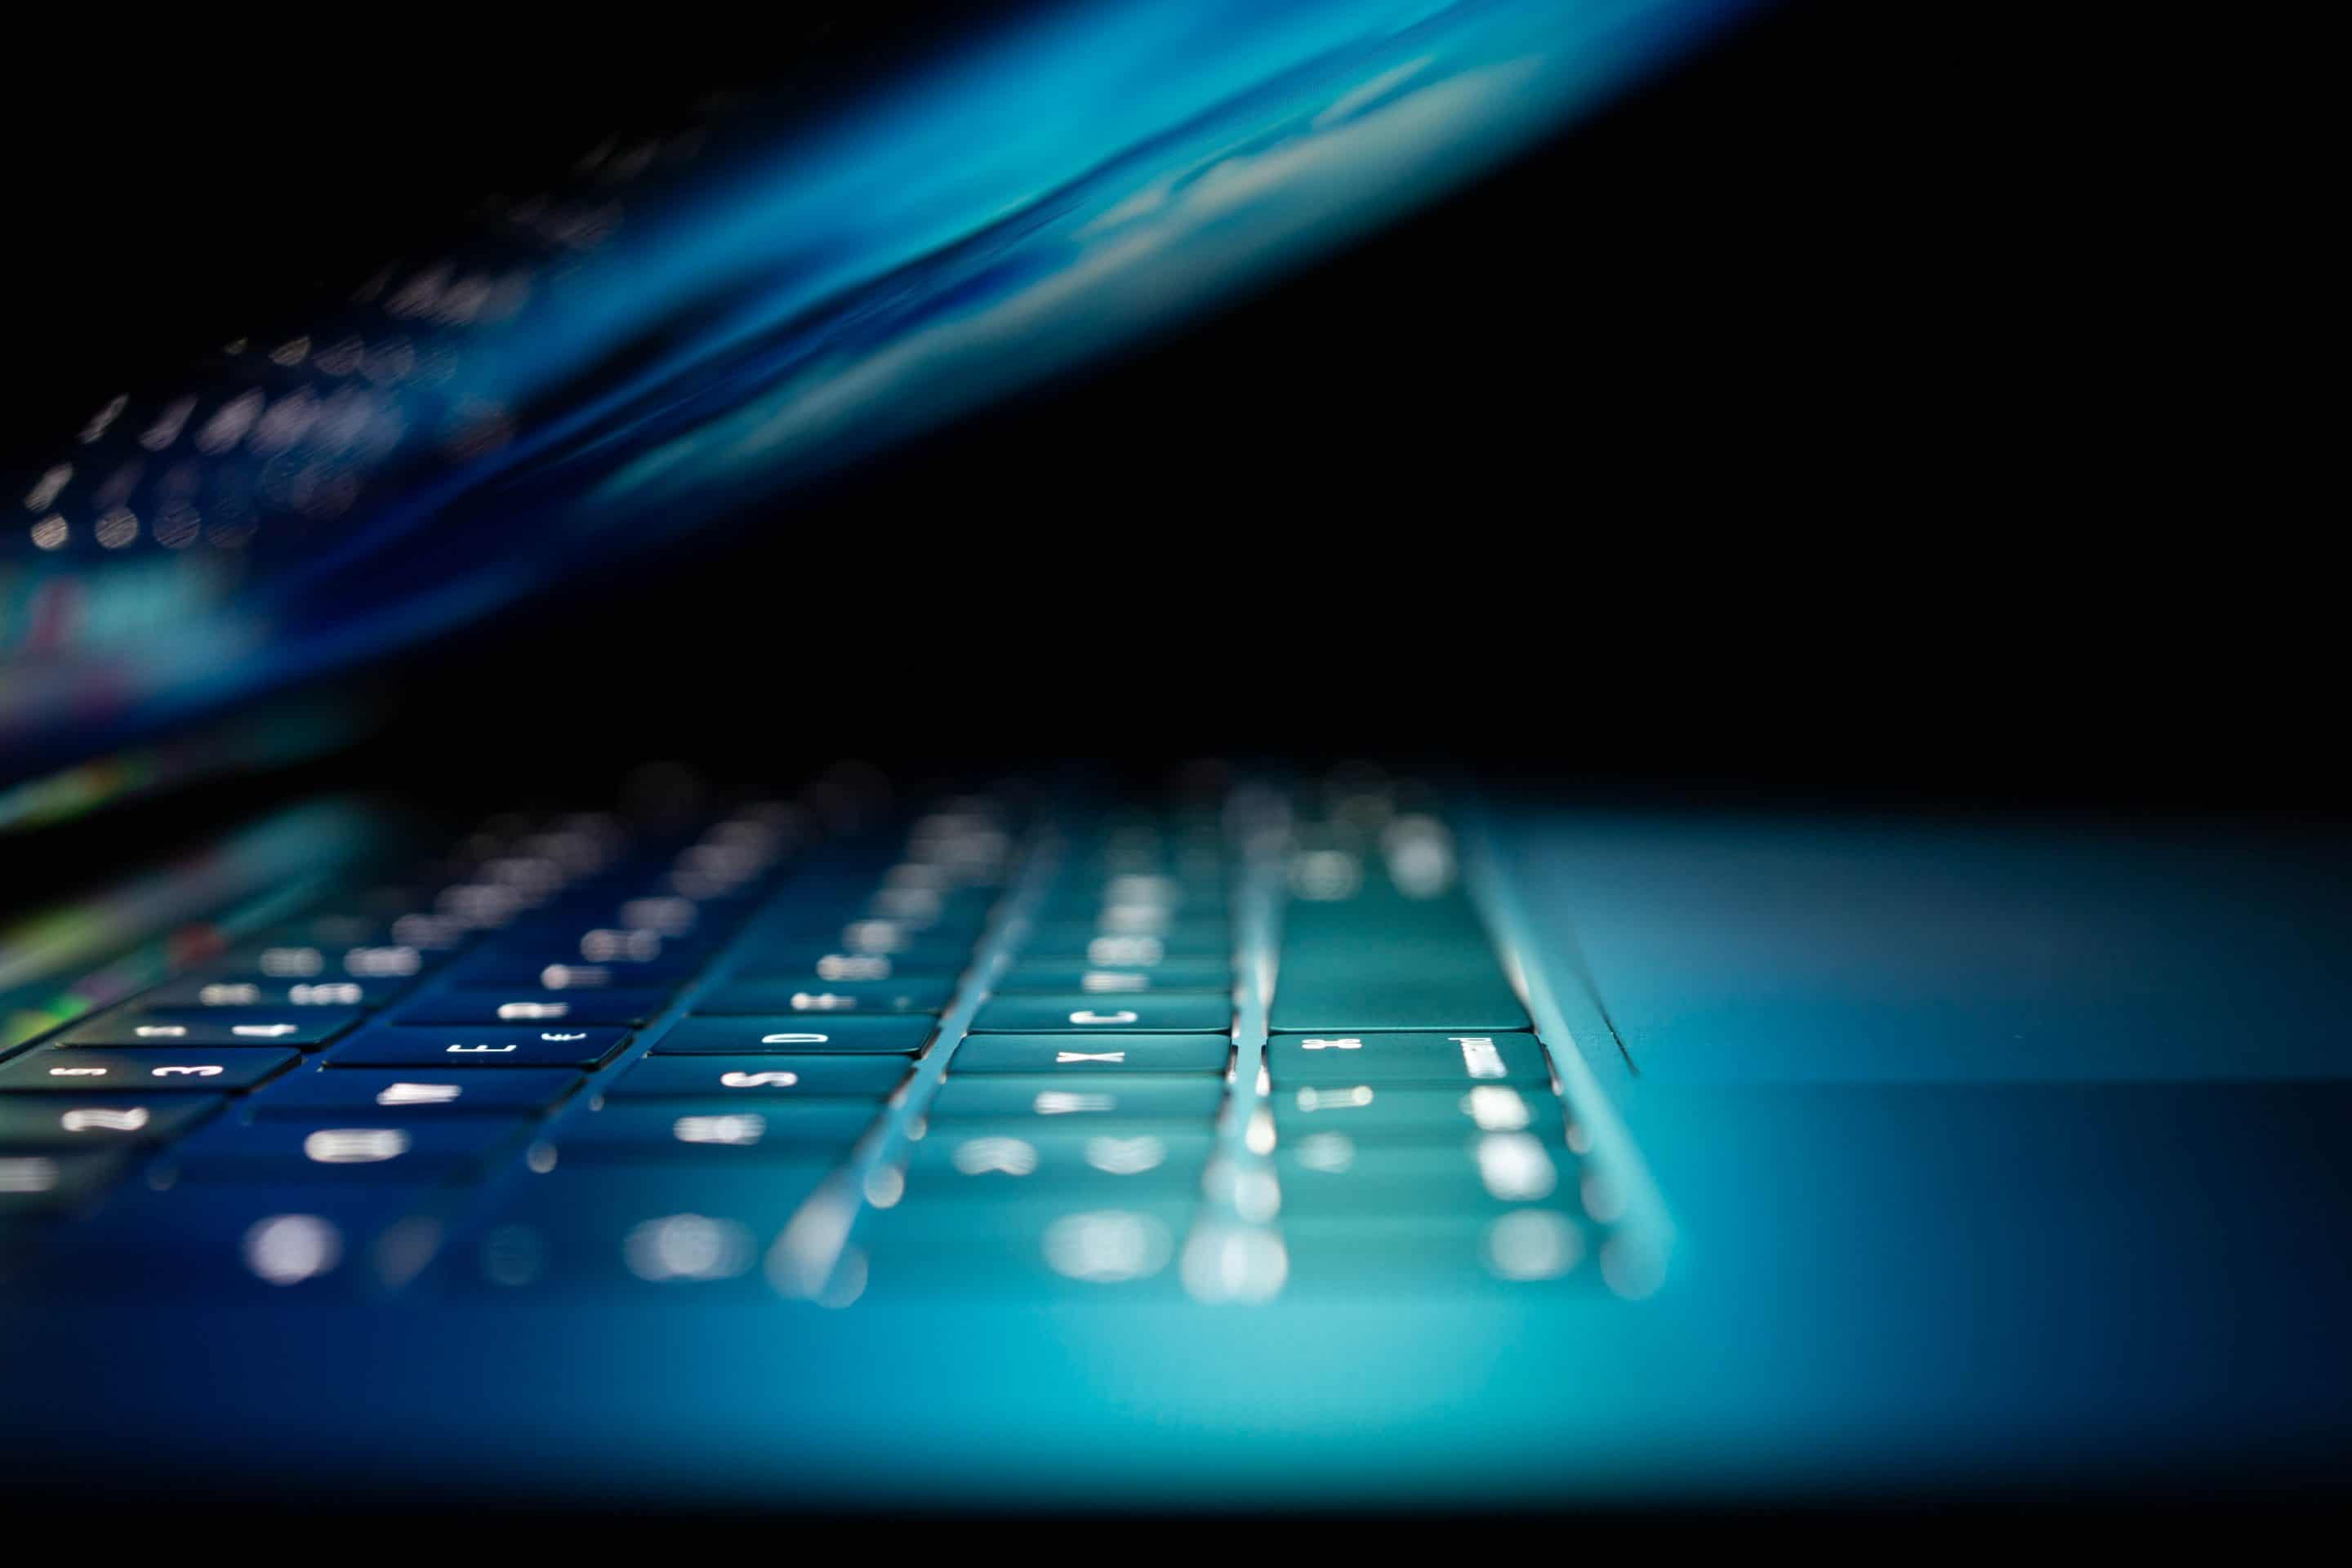 closeup photo of turned-on blue and white laptop computer